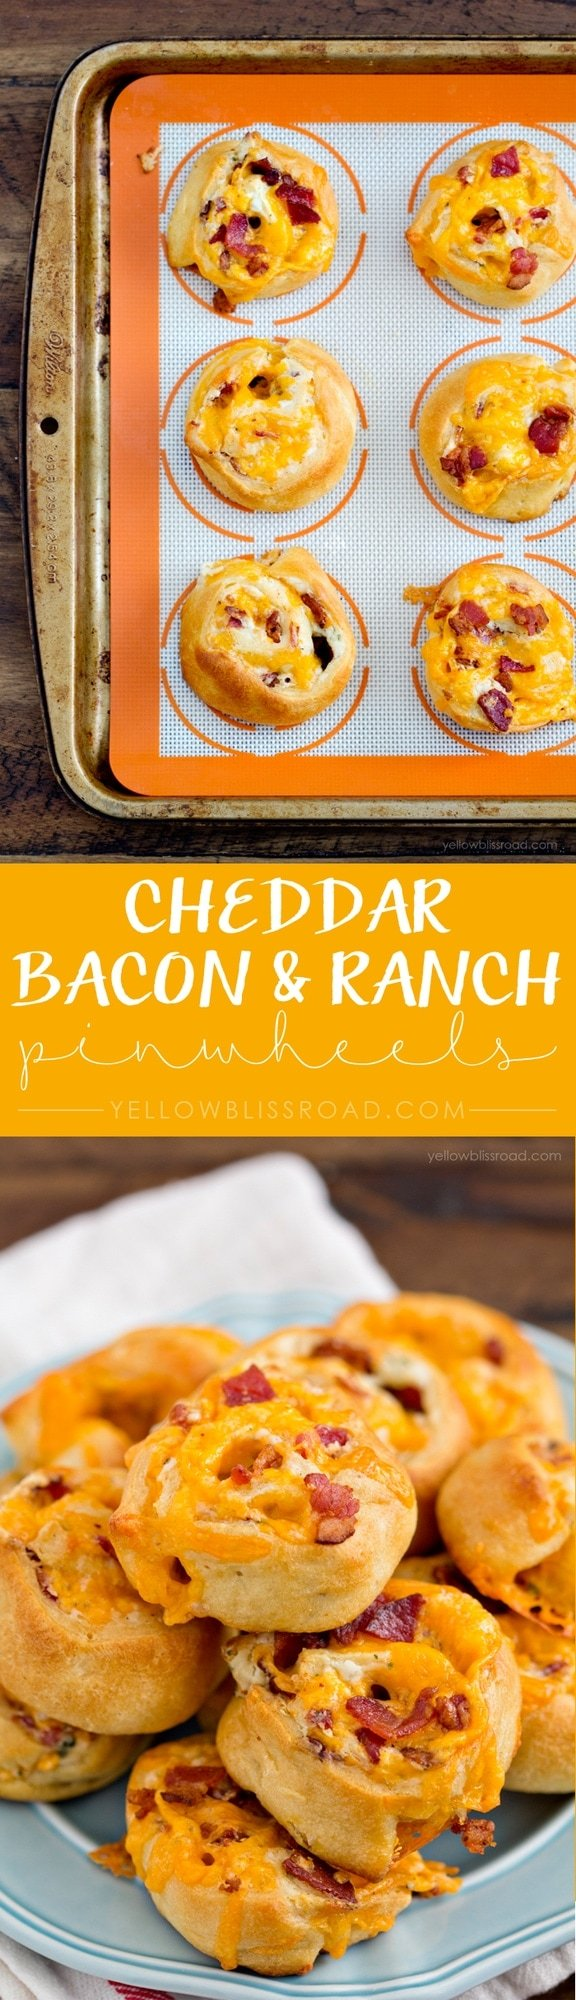 Cheddar Bacon & Ranch Pinwheel Appetizer Recipe - perfect for holiday parties or game day get togethers